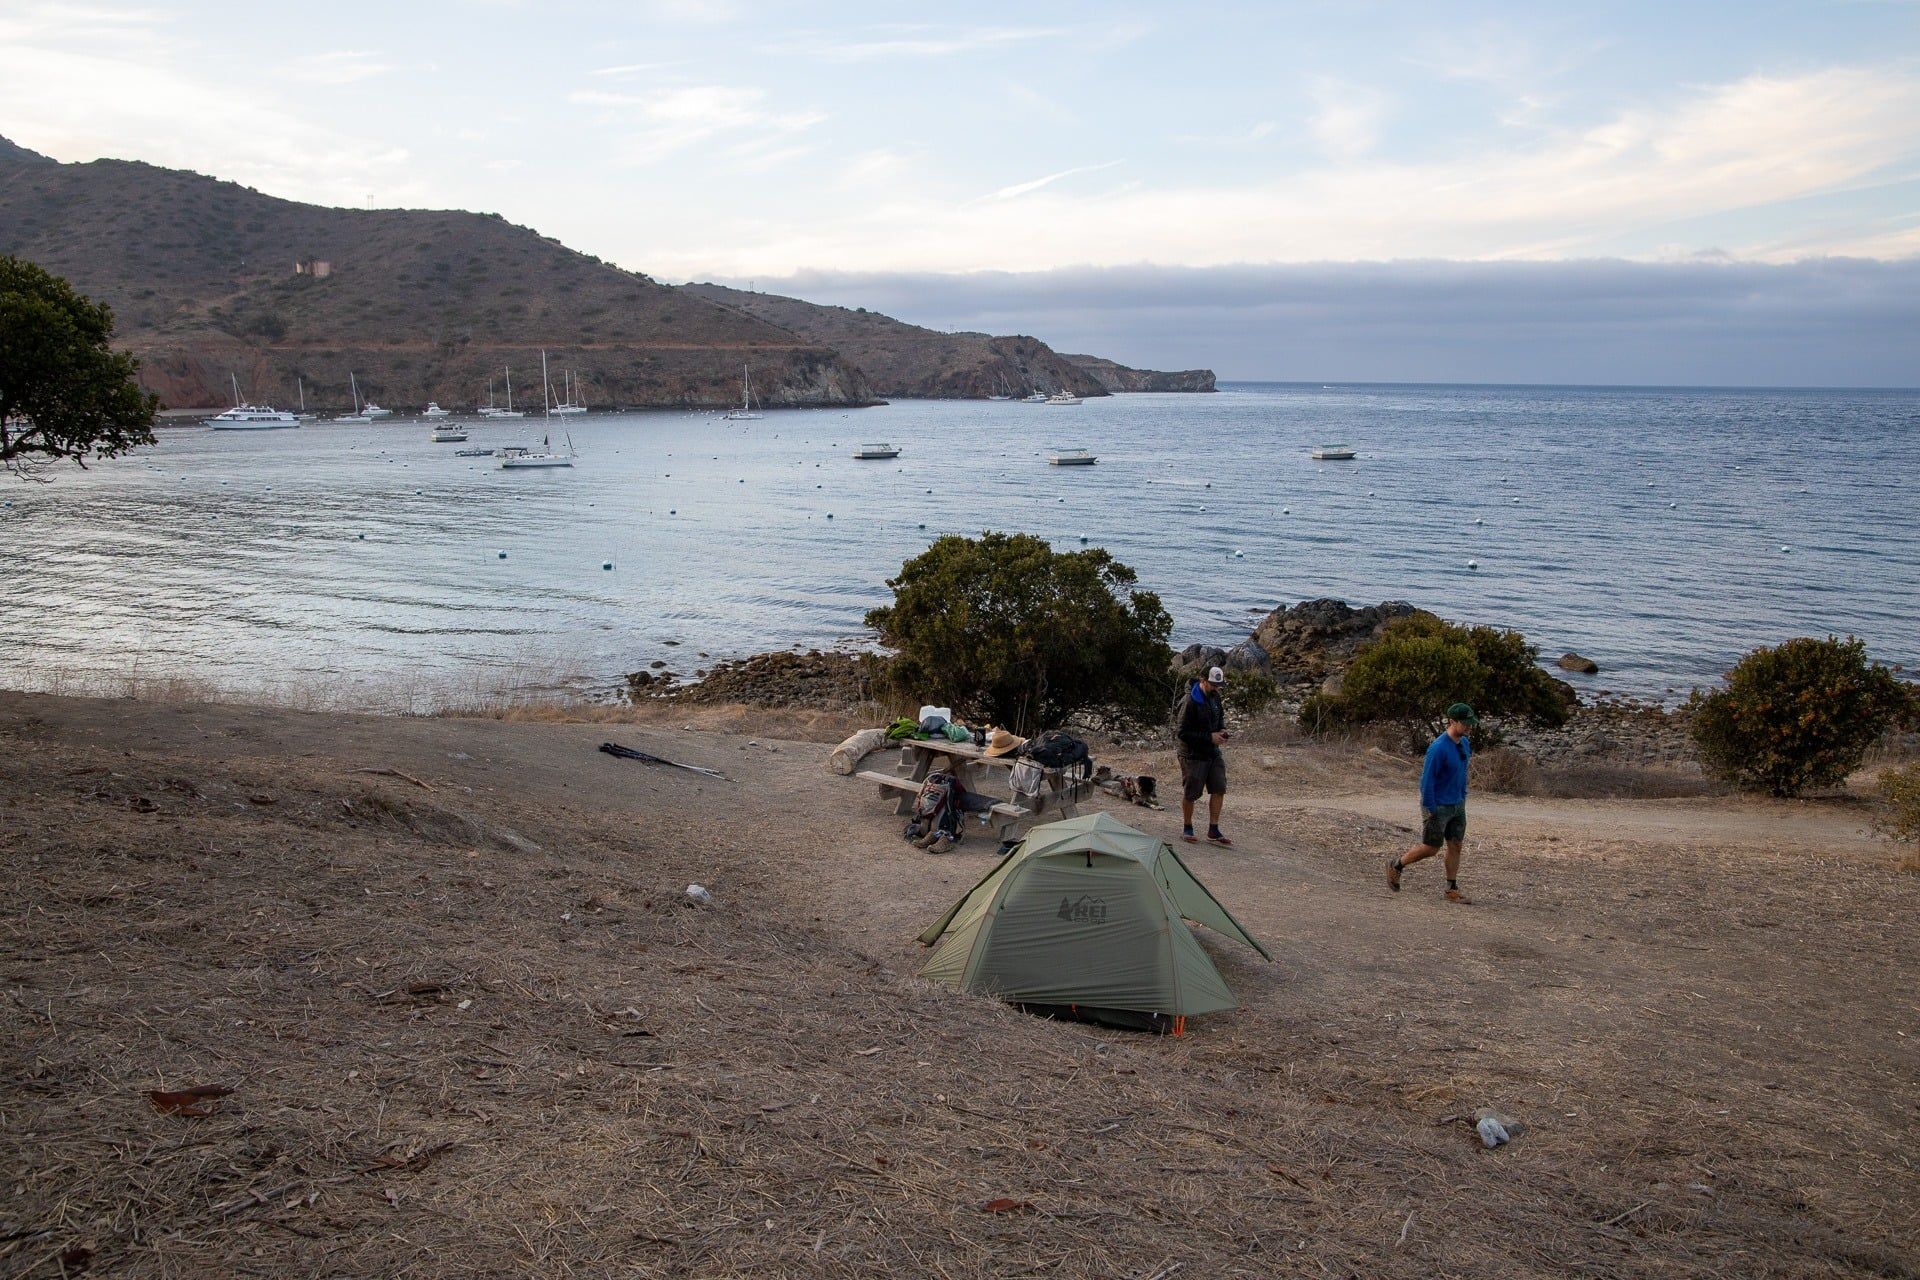 Two Harbors Campground // Plan a backpacking trip on the Trans-Catalina Trail on Catalina Island with this trail guide with tips on the best campsites, water availability, gear & more